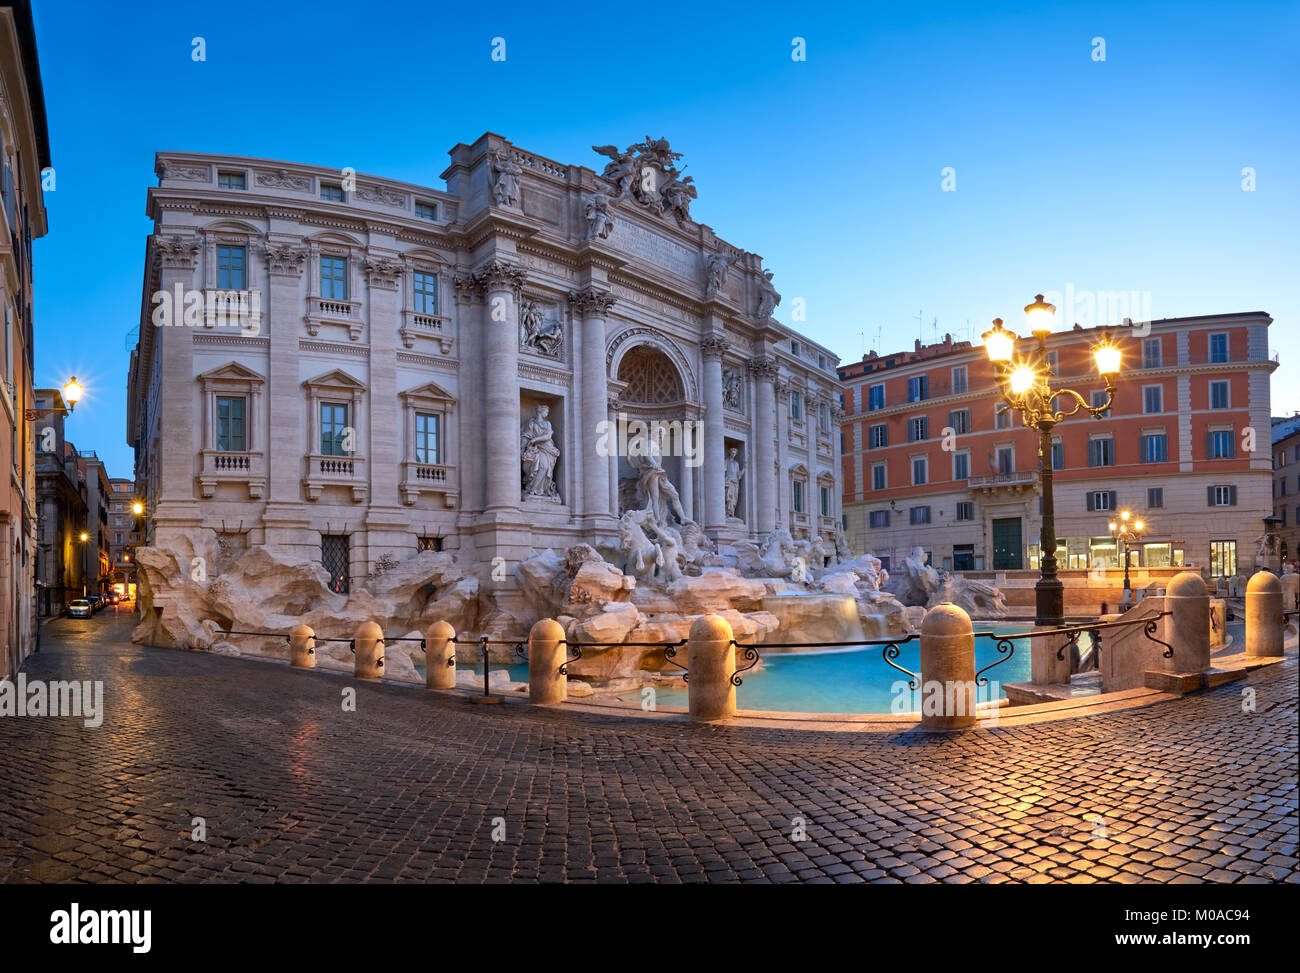 Fountain di Trevi in Rome, Italy, in the night. Panoramic image. - Stock Image